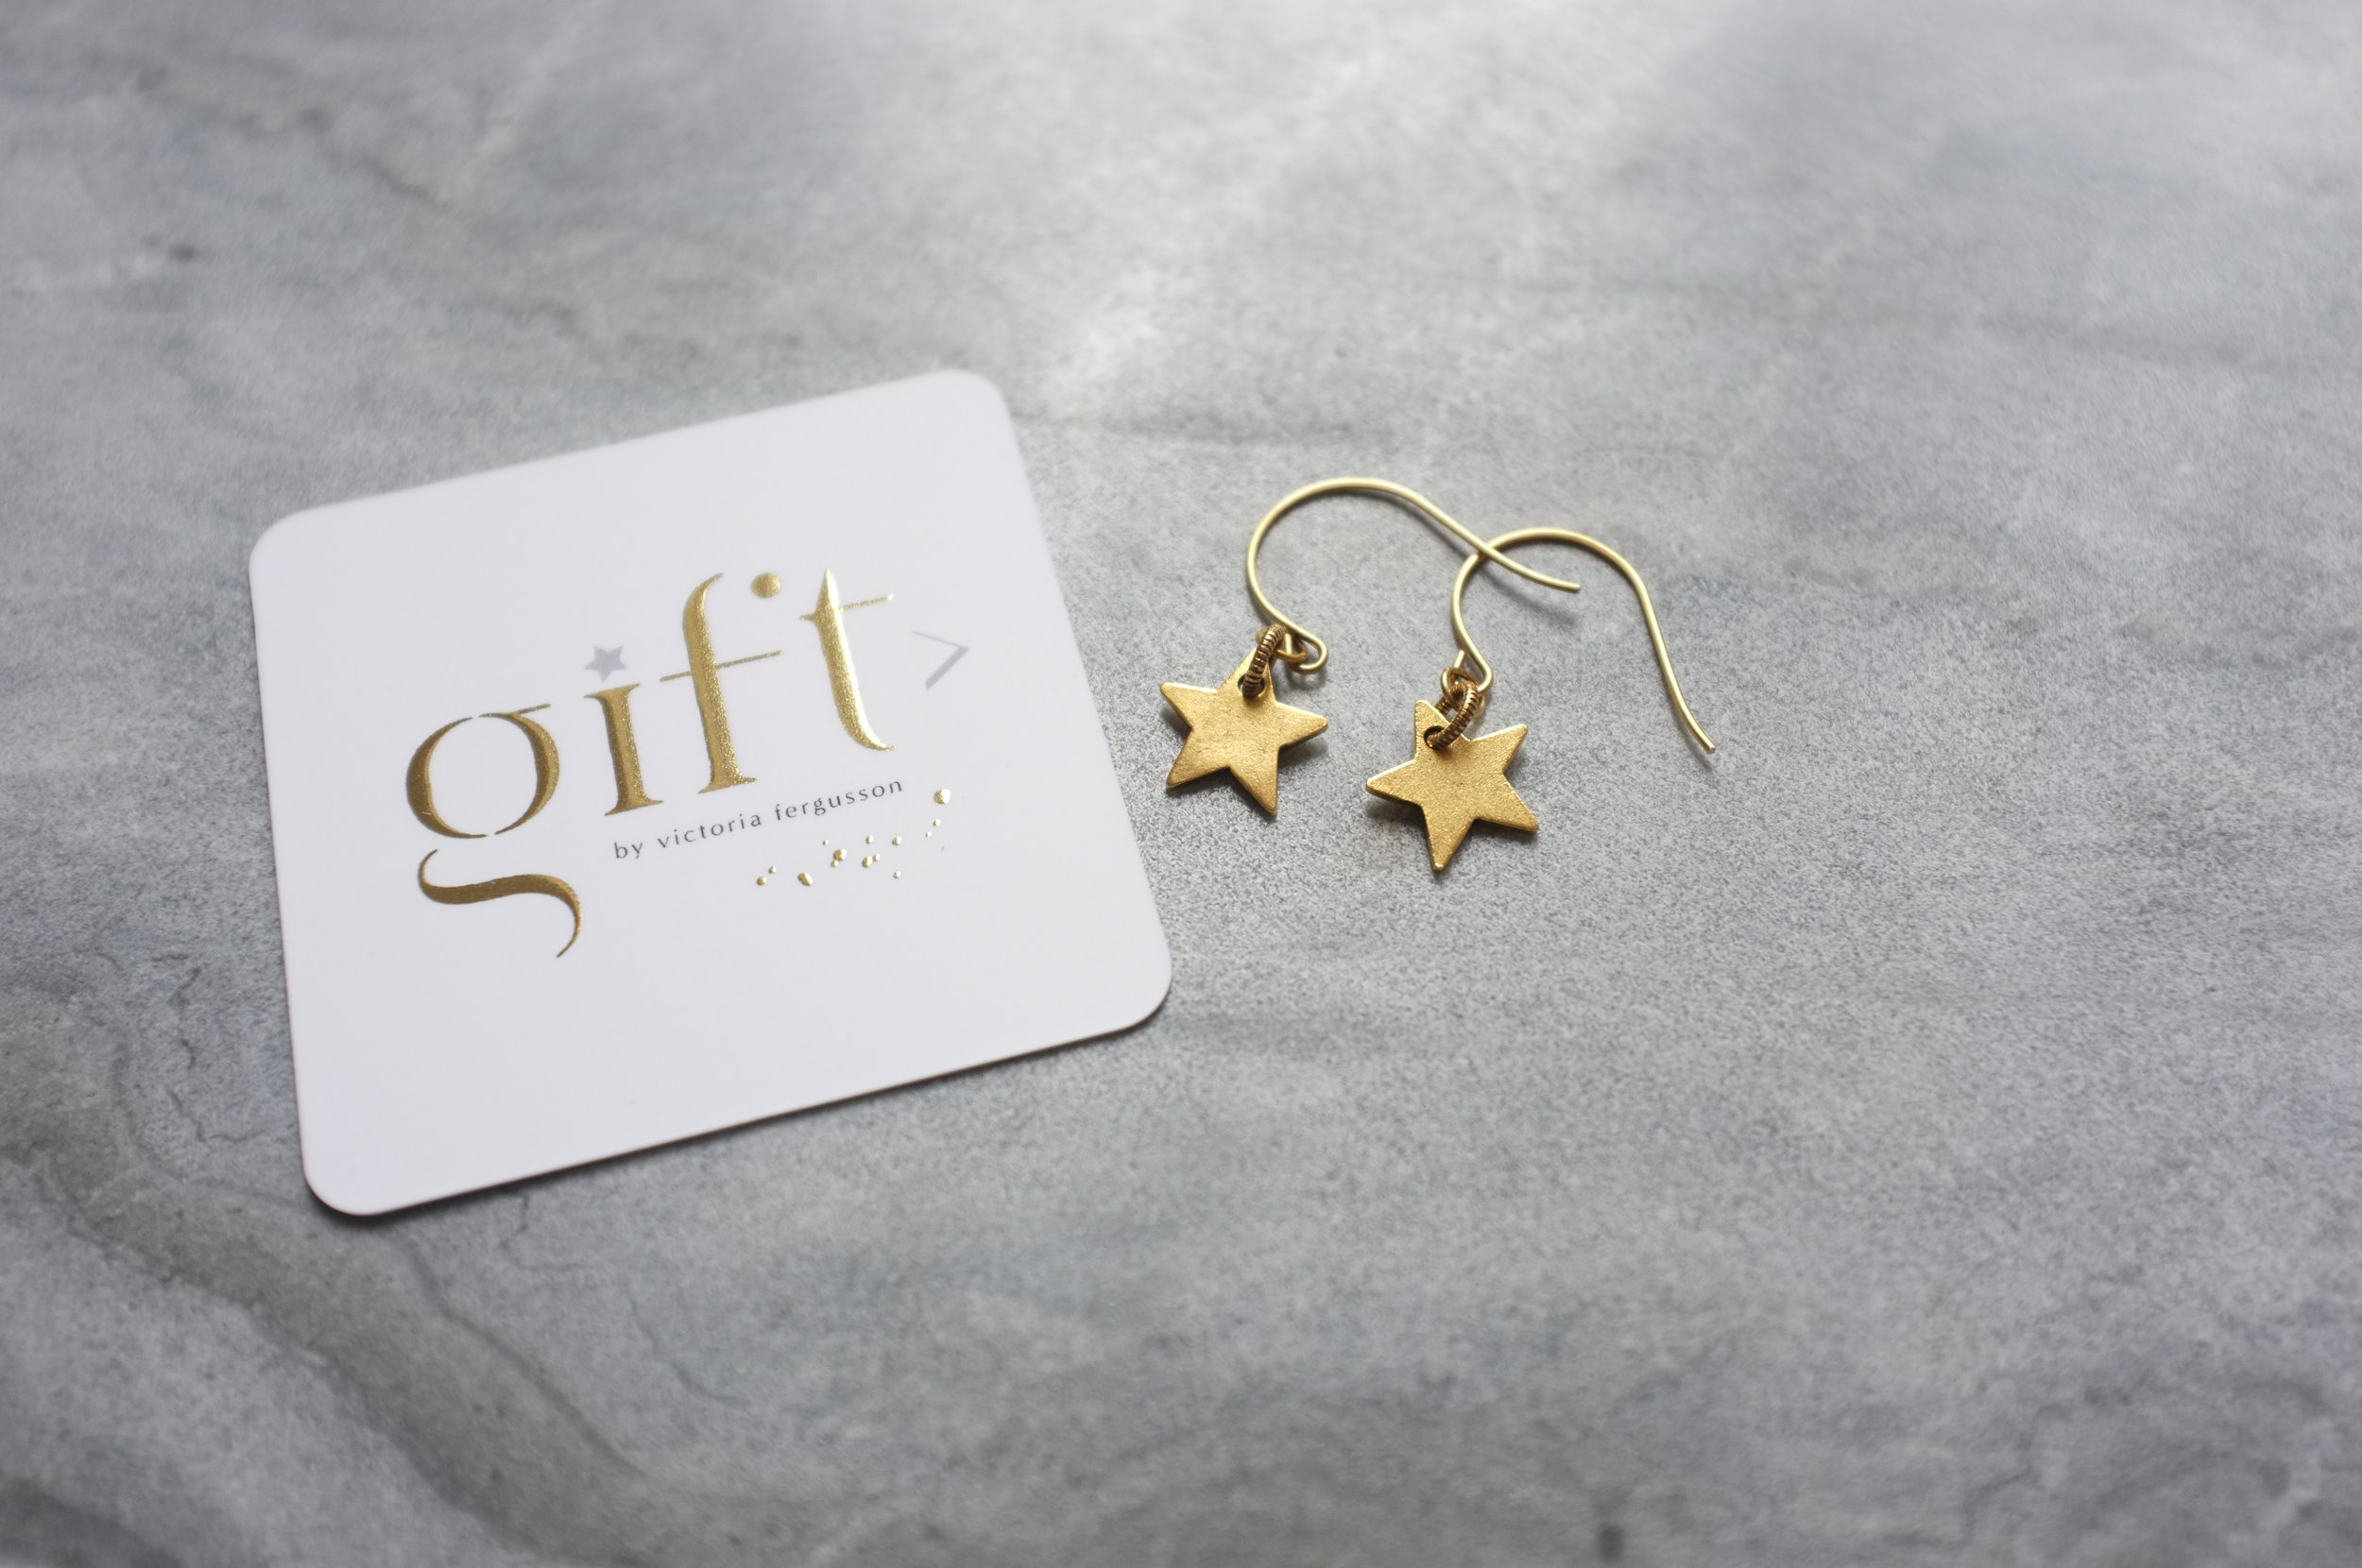 Copy of North Star earrings gold